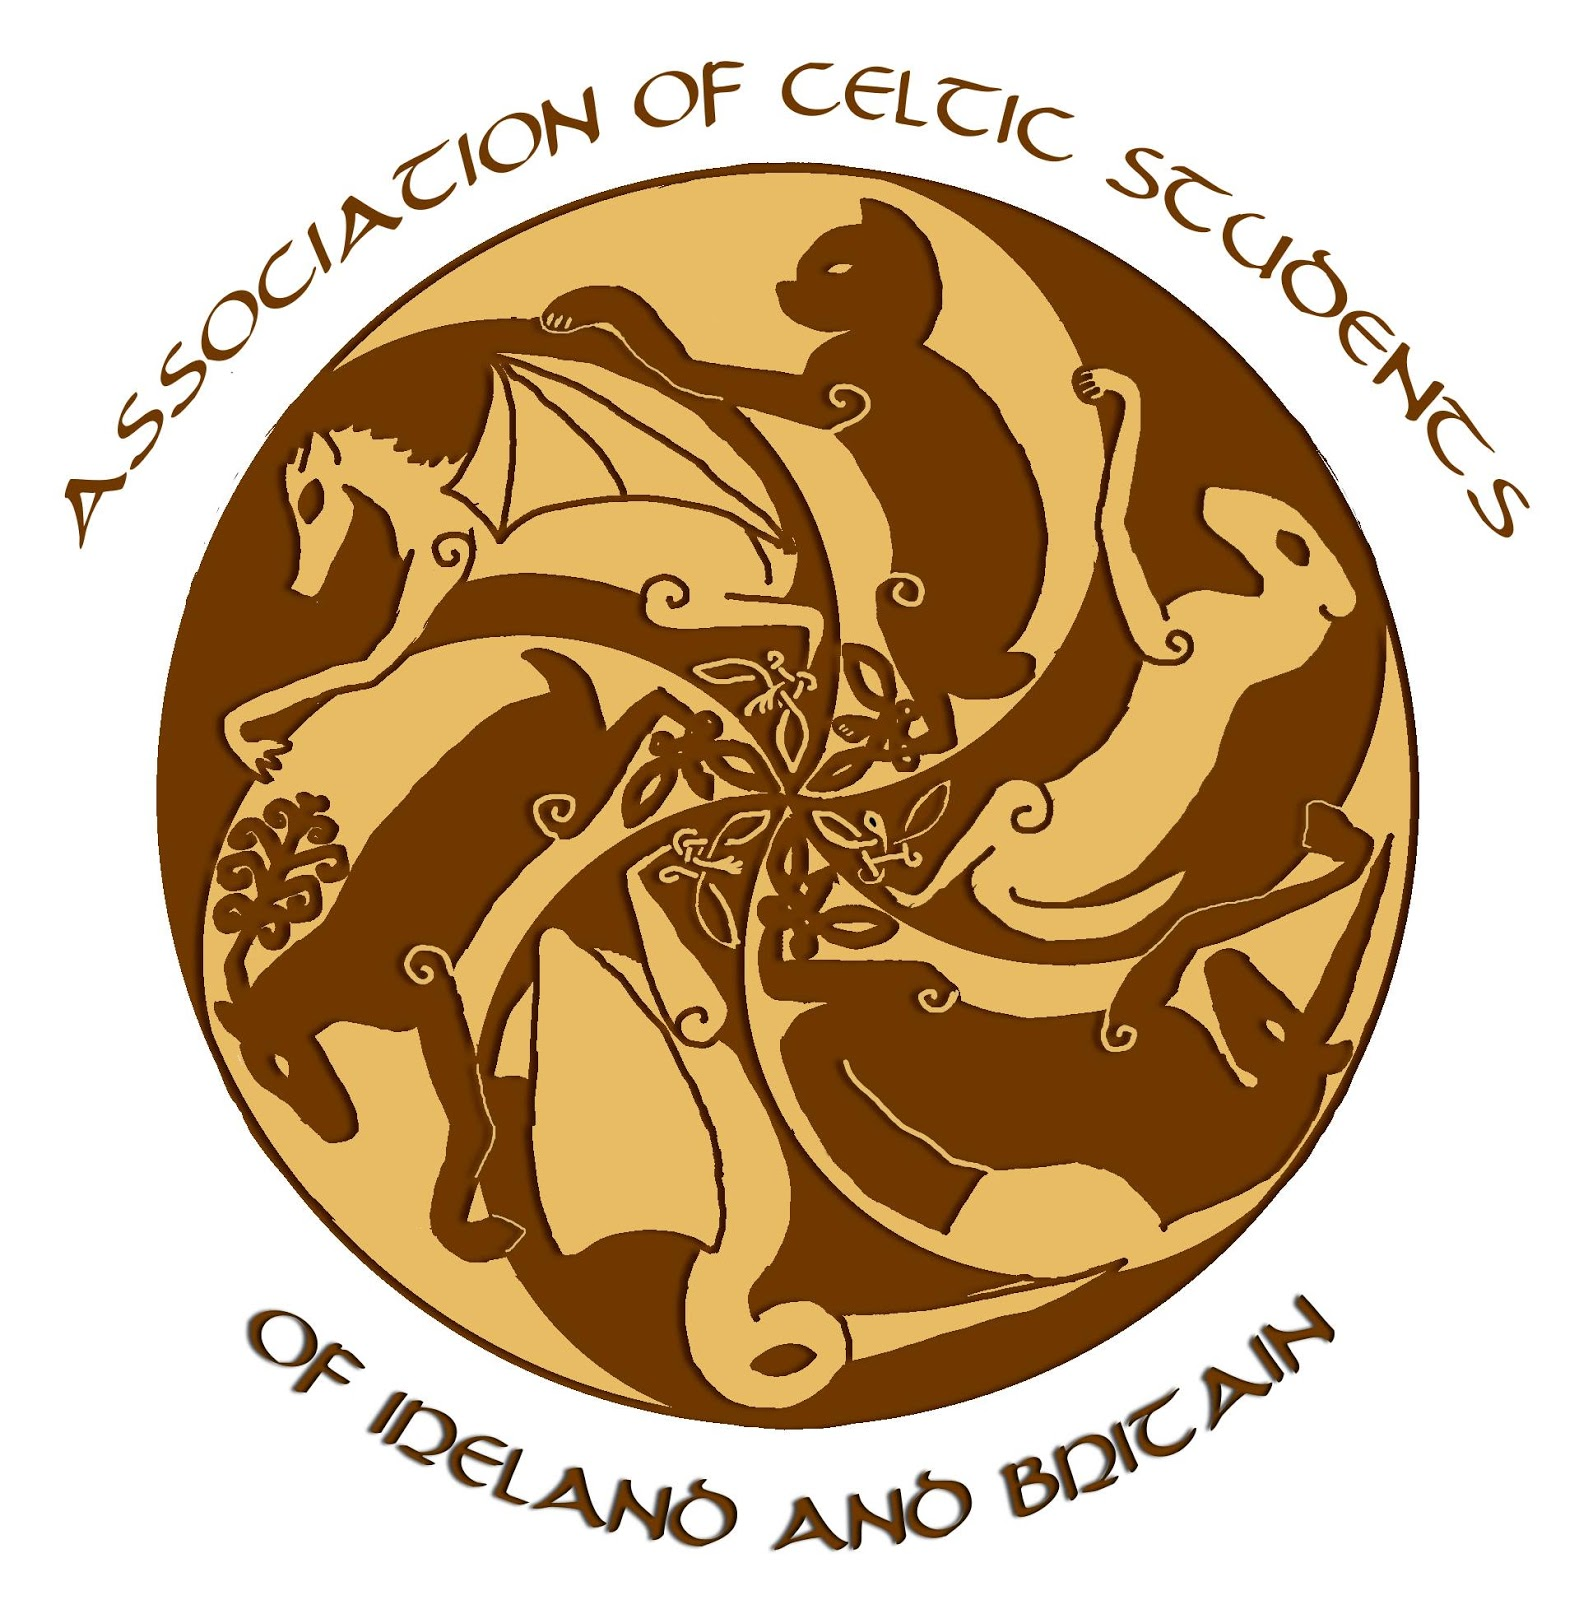 Association of Celtic Students of Ireland and Britain.